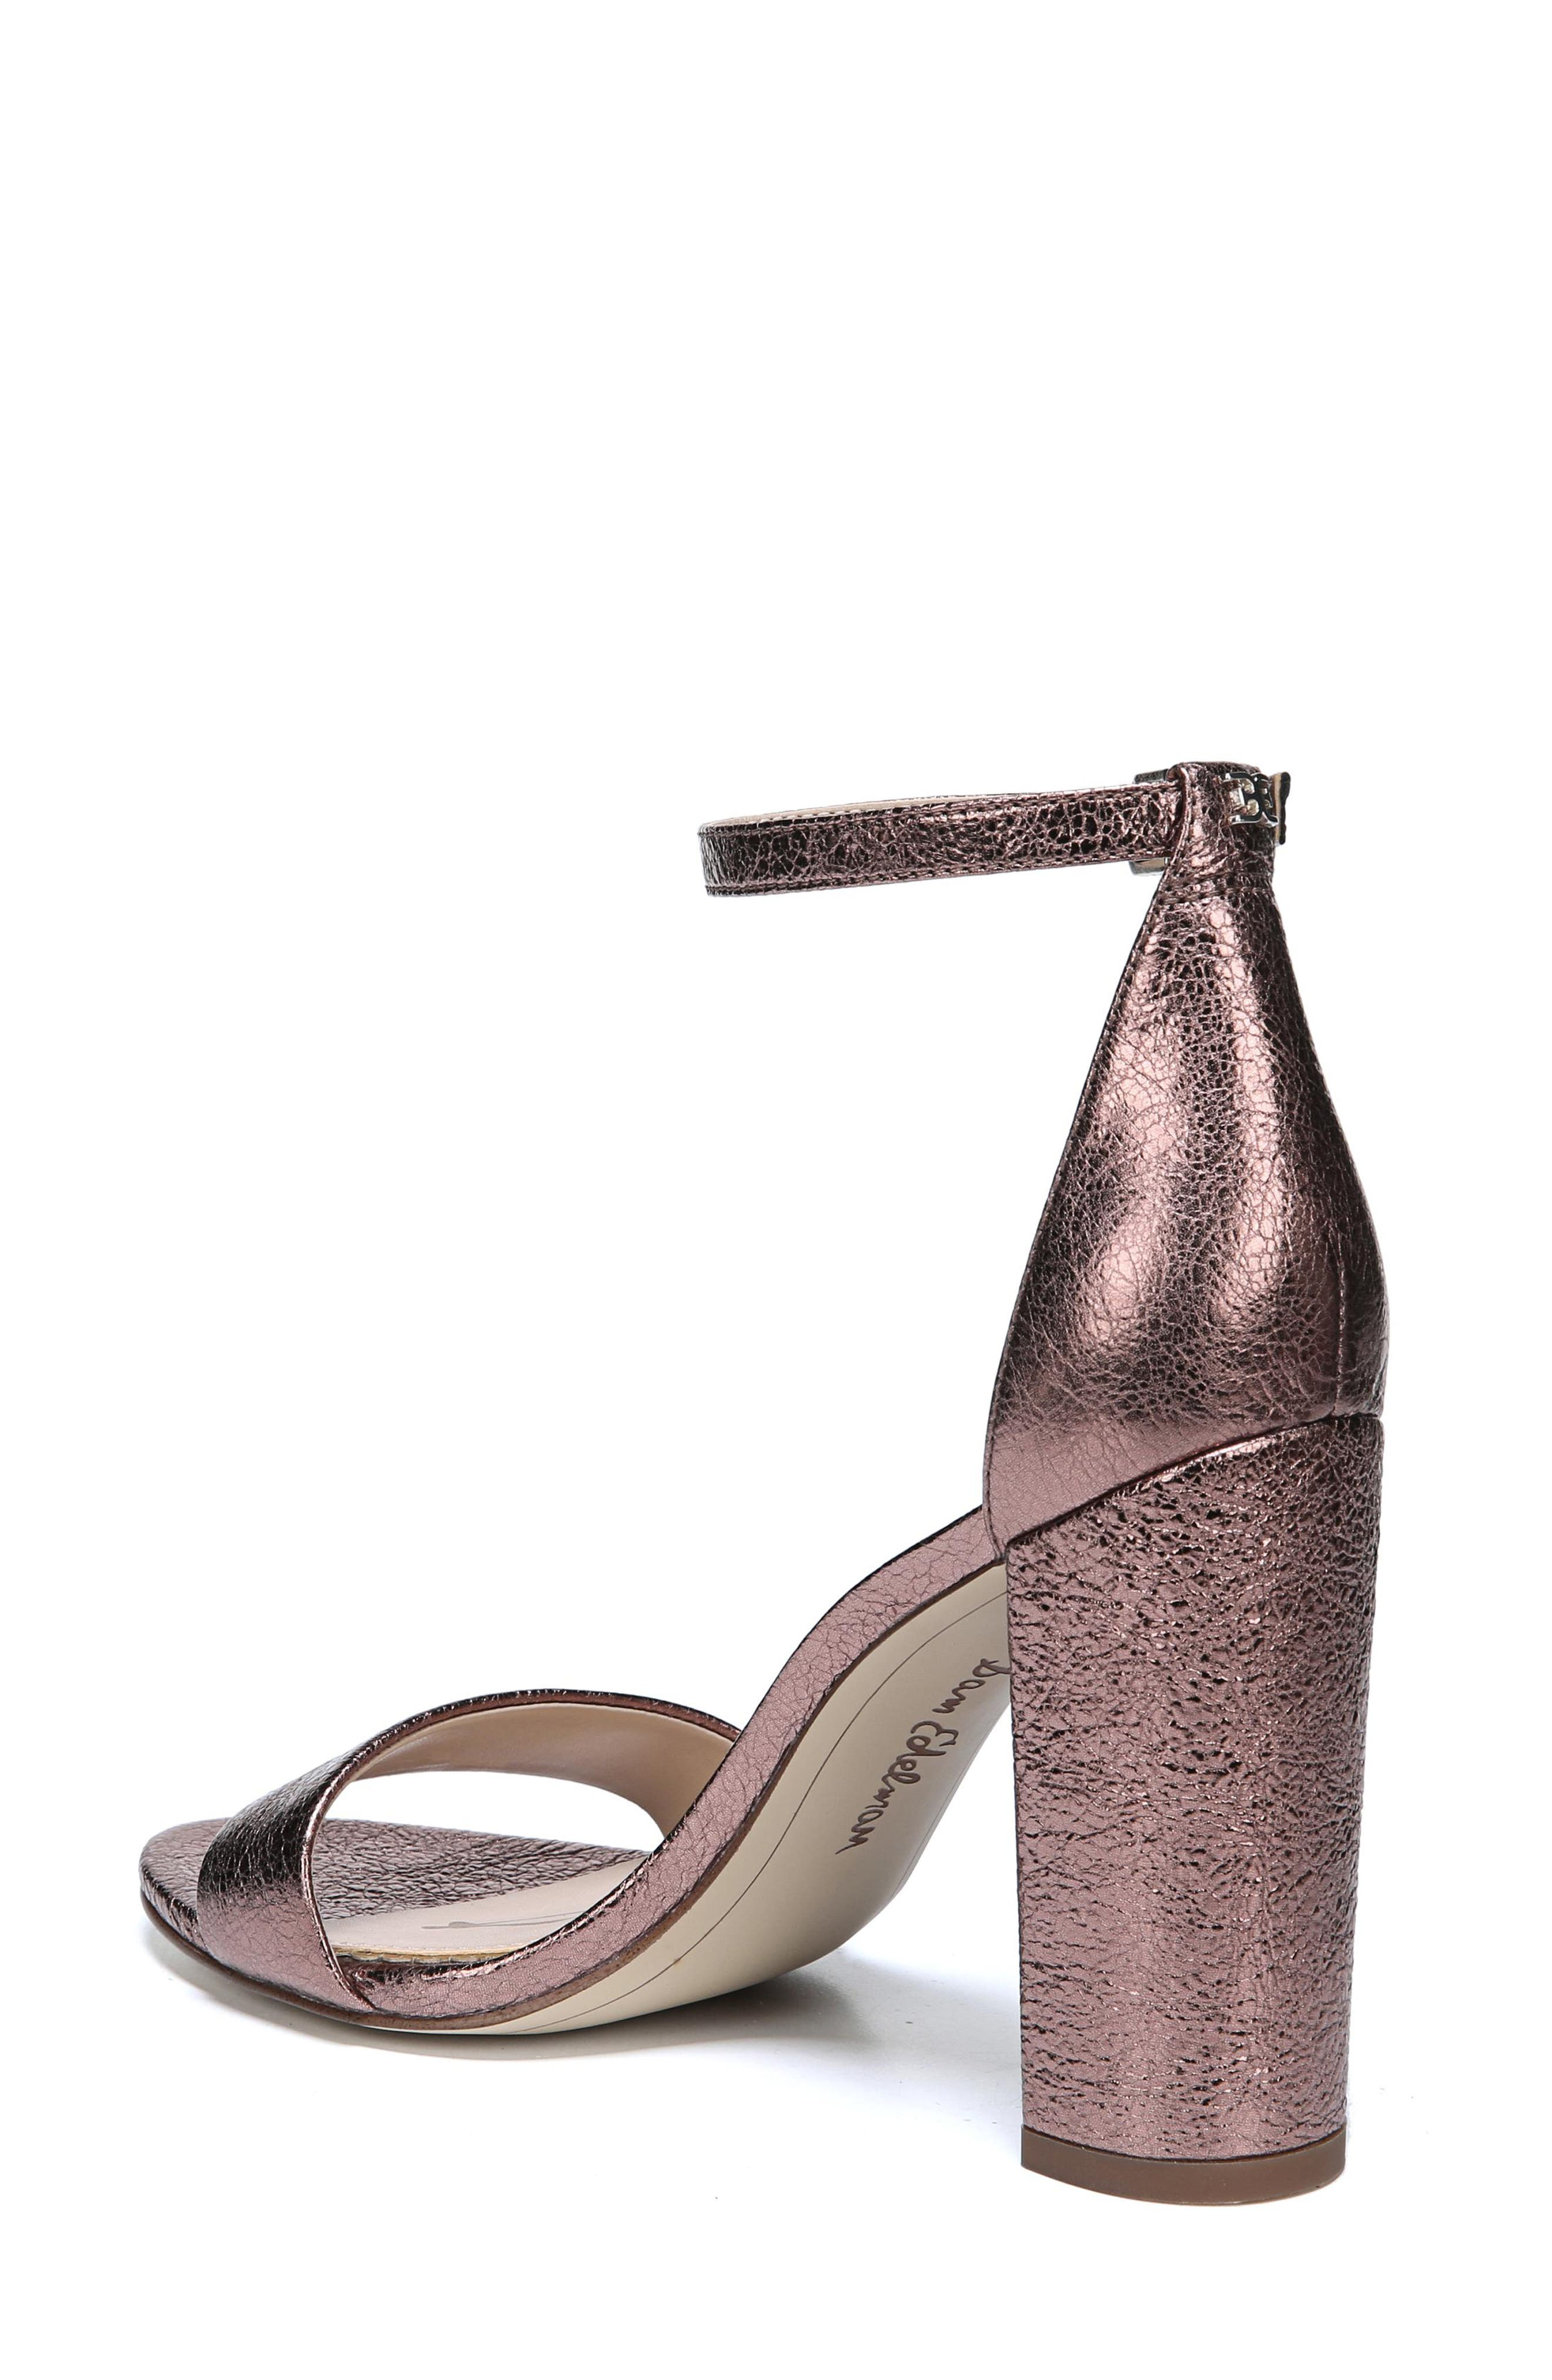 Yaro Ankle Strap Sandal,                             Alternate thumbnail 2, color,                             Cameo Pink Suede